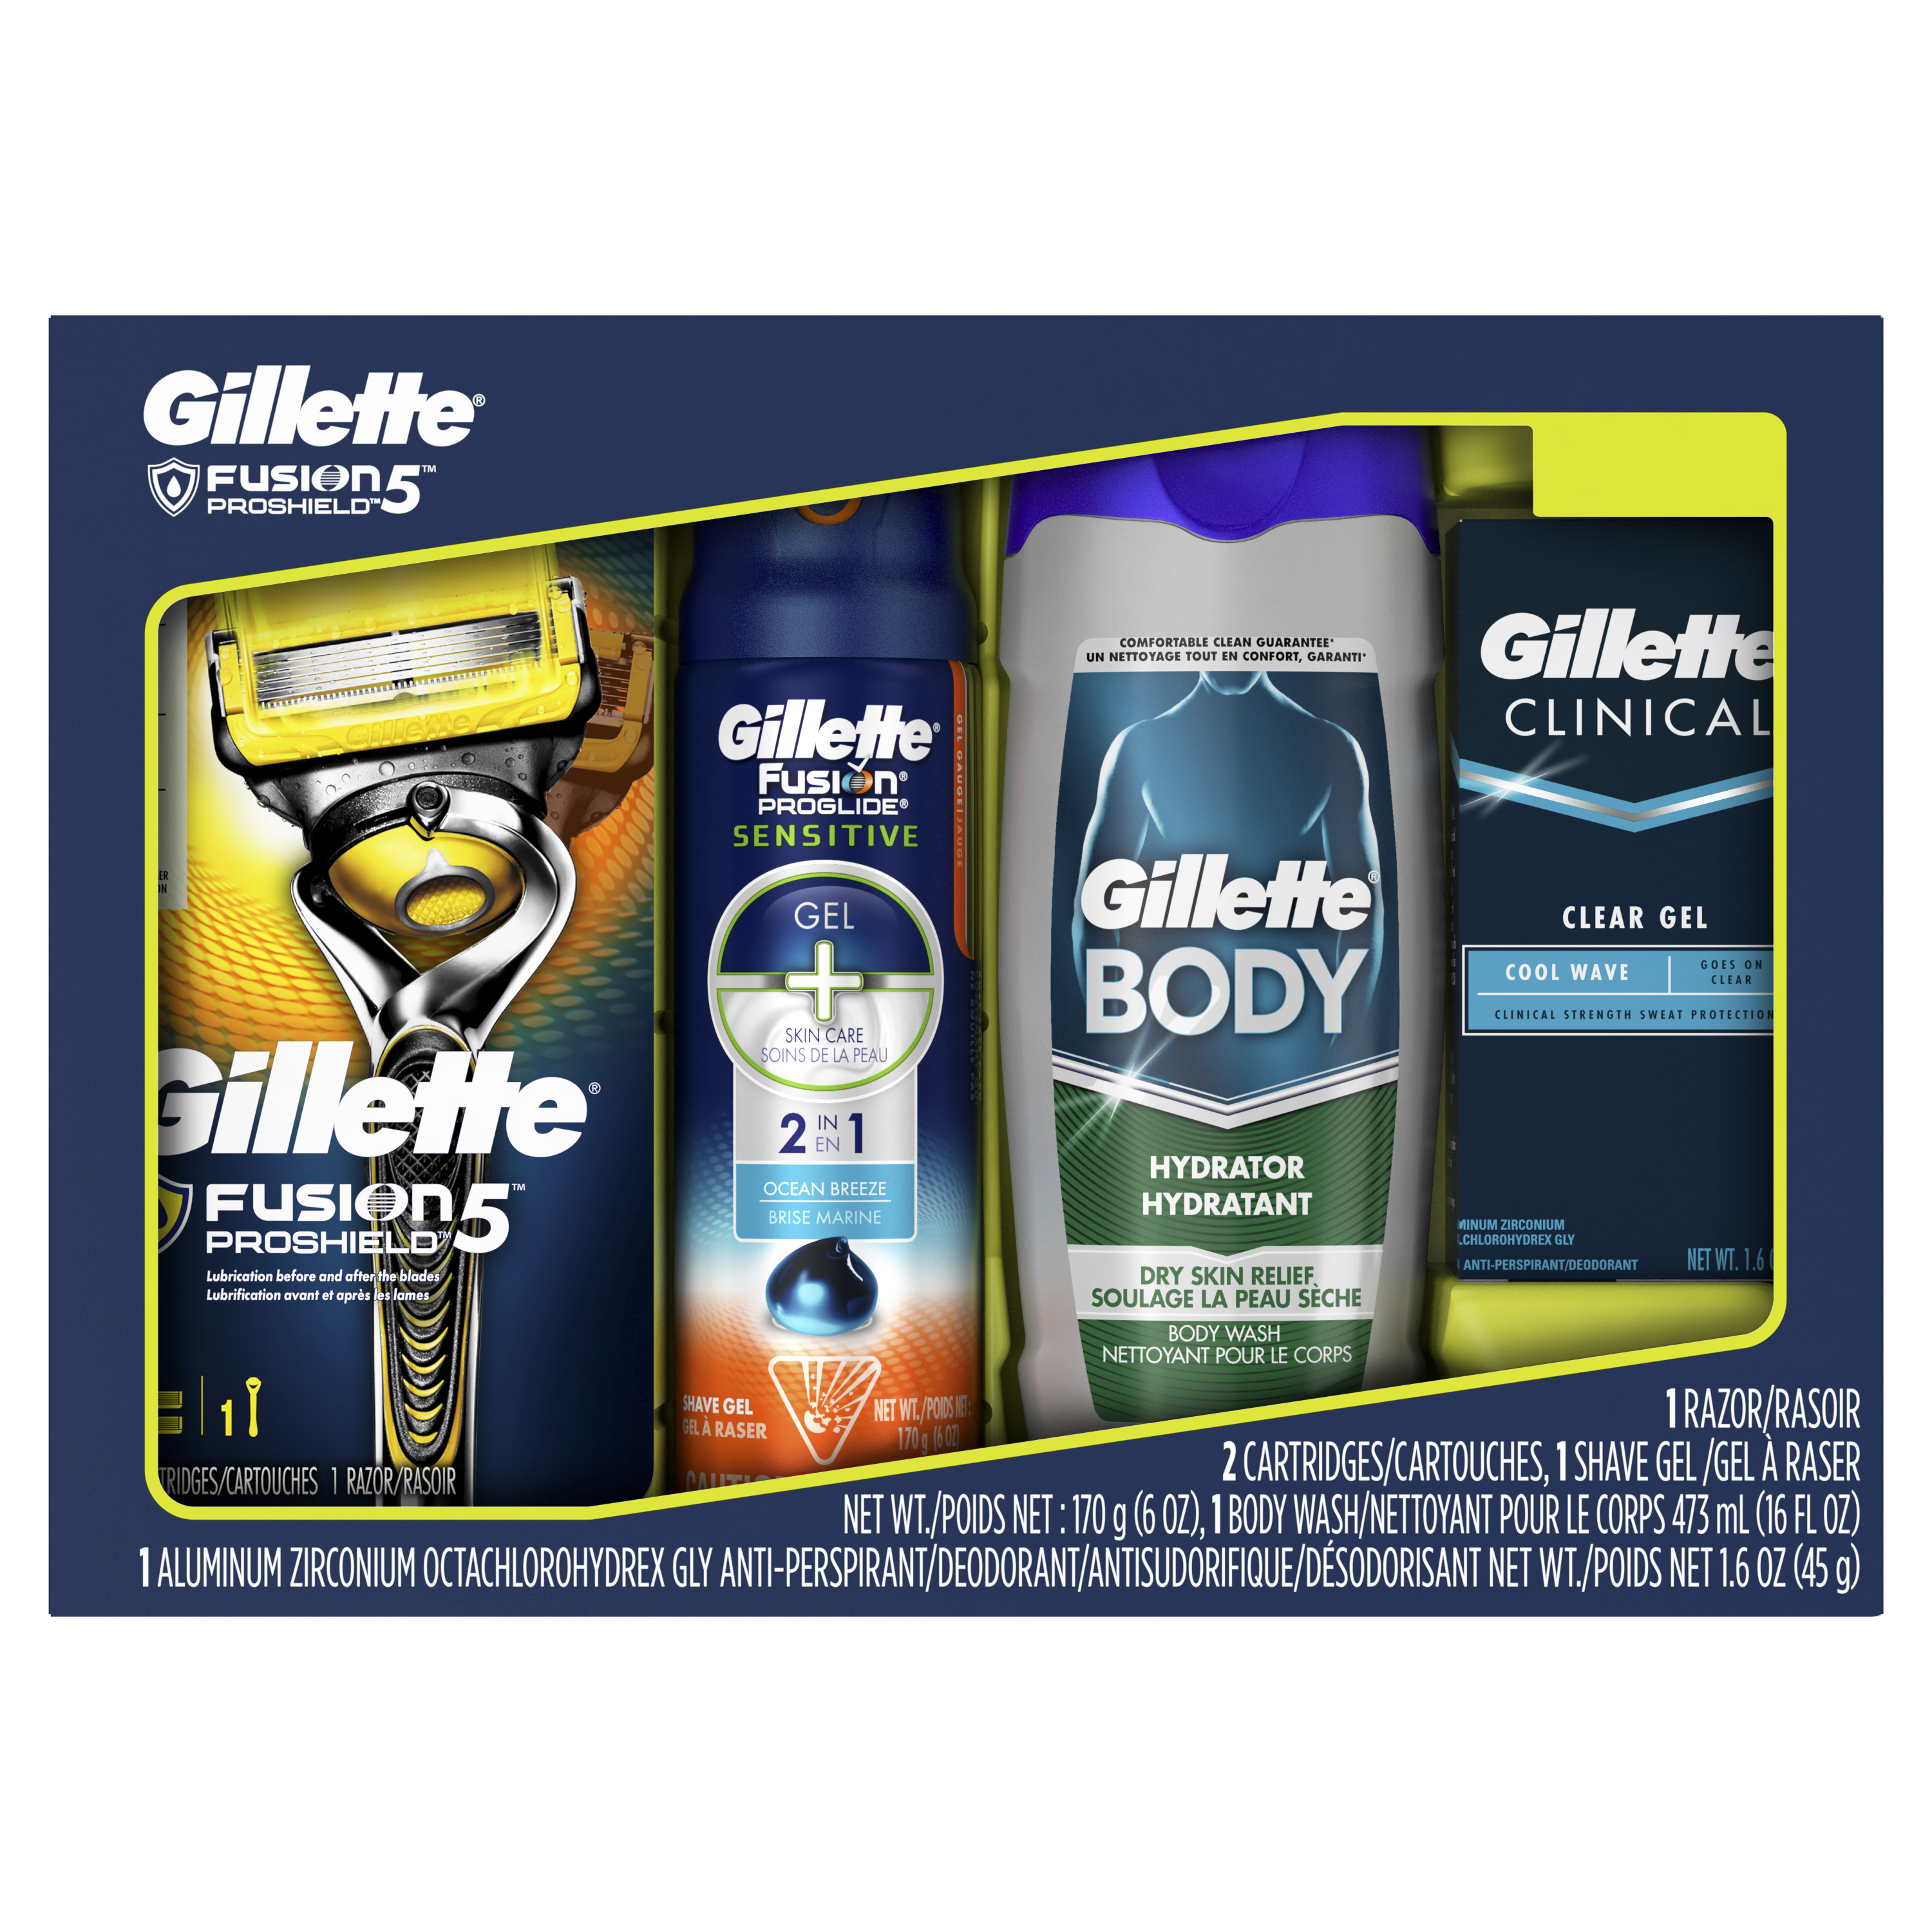 Gillette Fusion5 Proshield Razor, Body Wash, Deodorant Gift Set